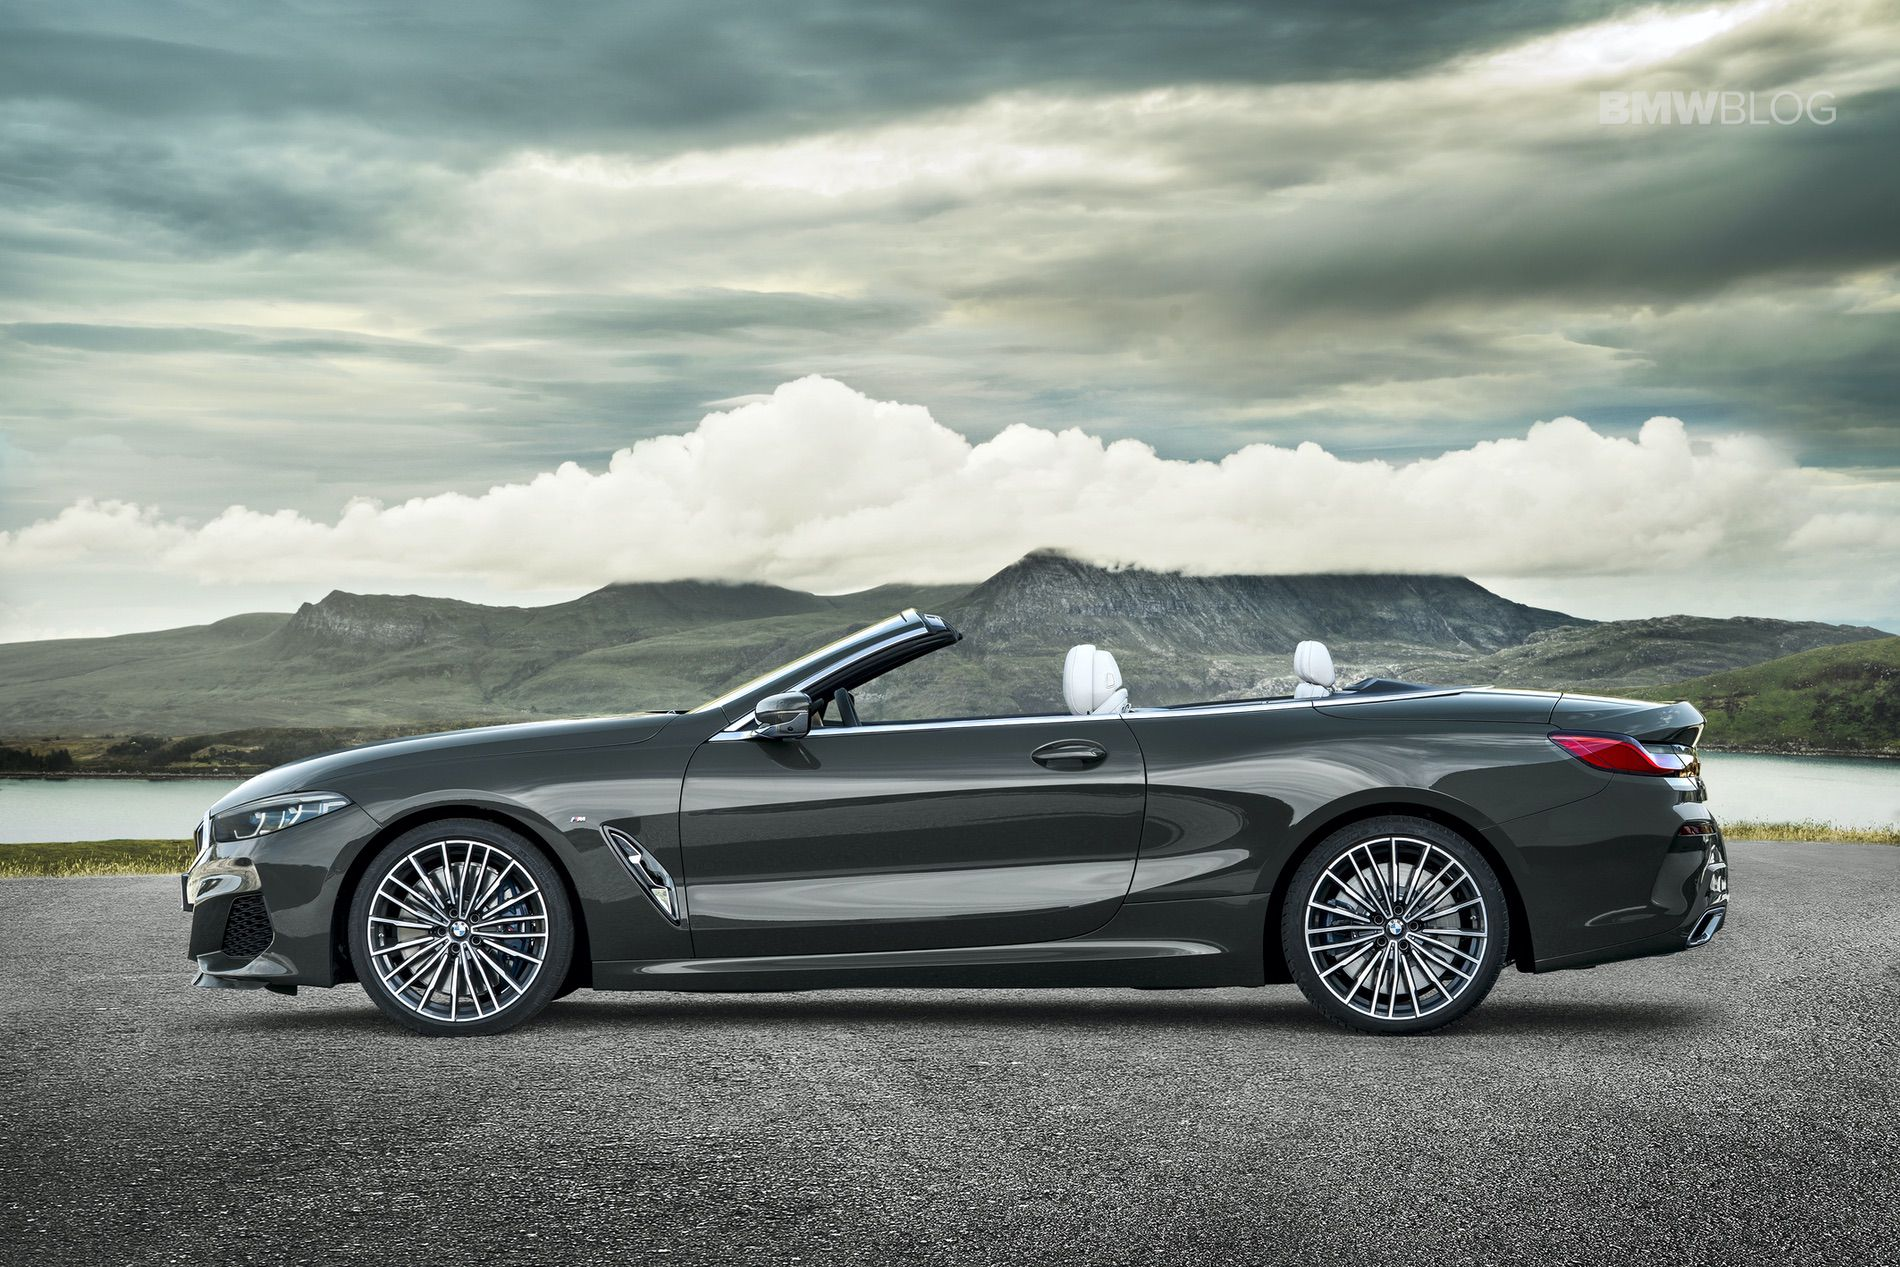 BMW 8 Series Convertible images 26